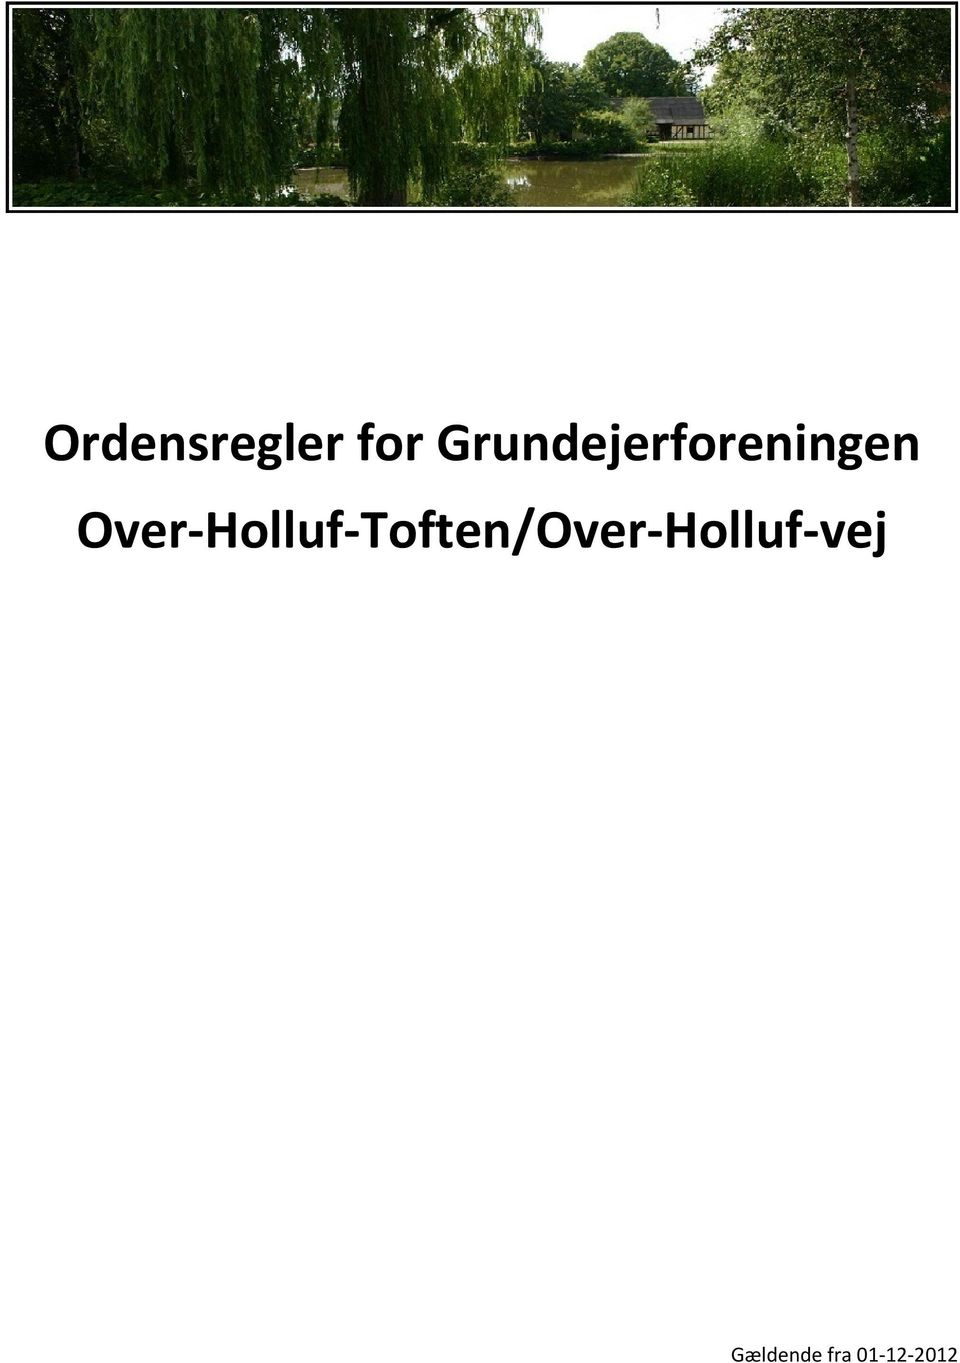 Over Holluf Toften/Over